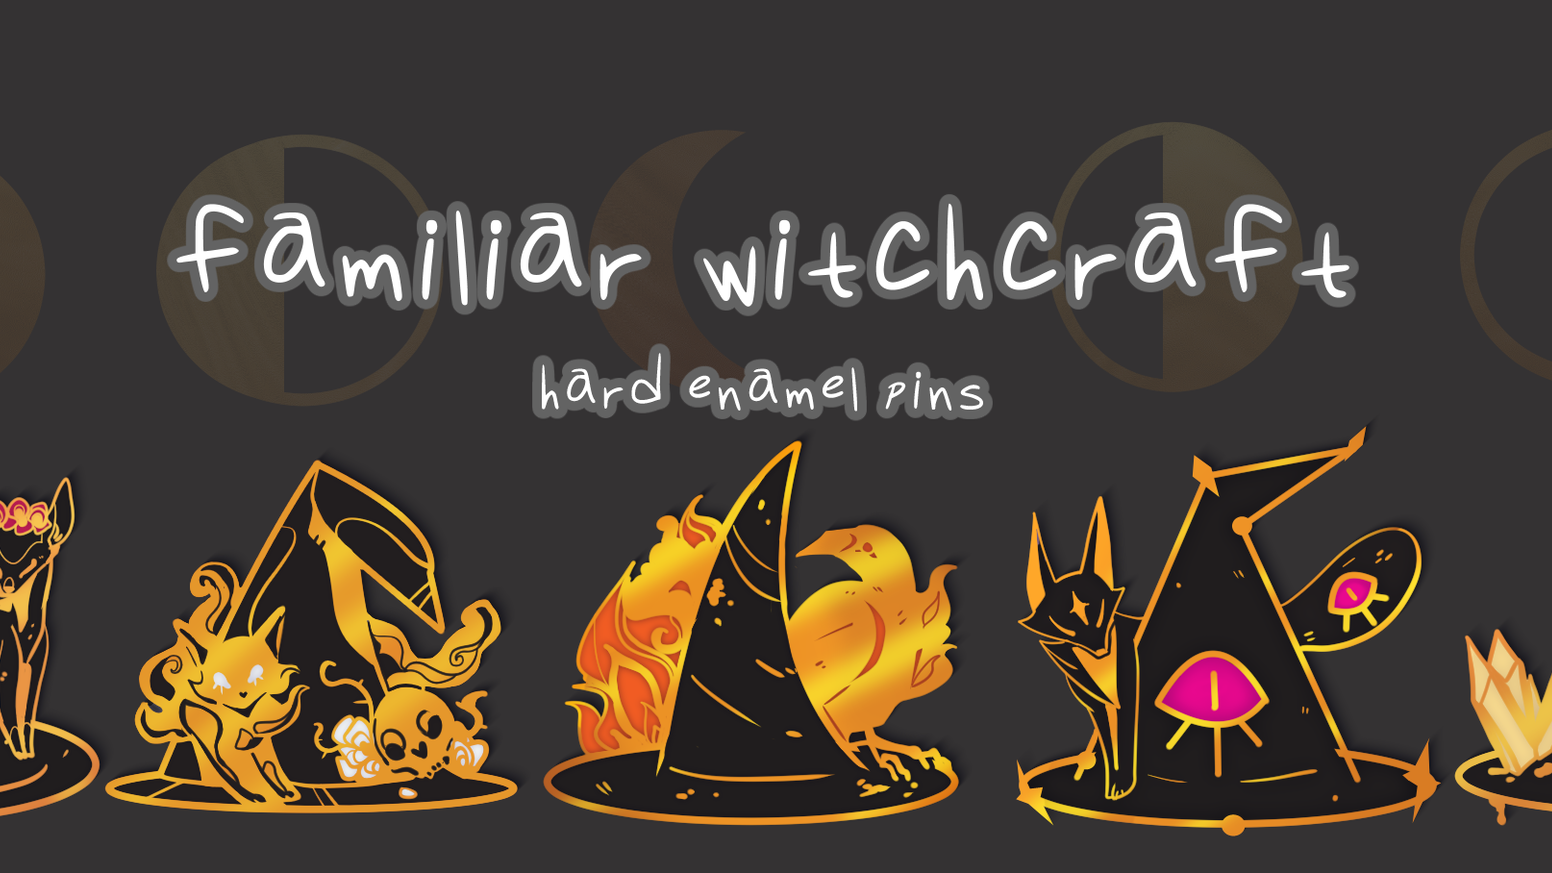 Familiar Witchcraft is a set of gold hard enamel pins made up of witchy hats and familiars. Share your love of magic with this set!